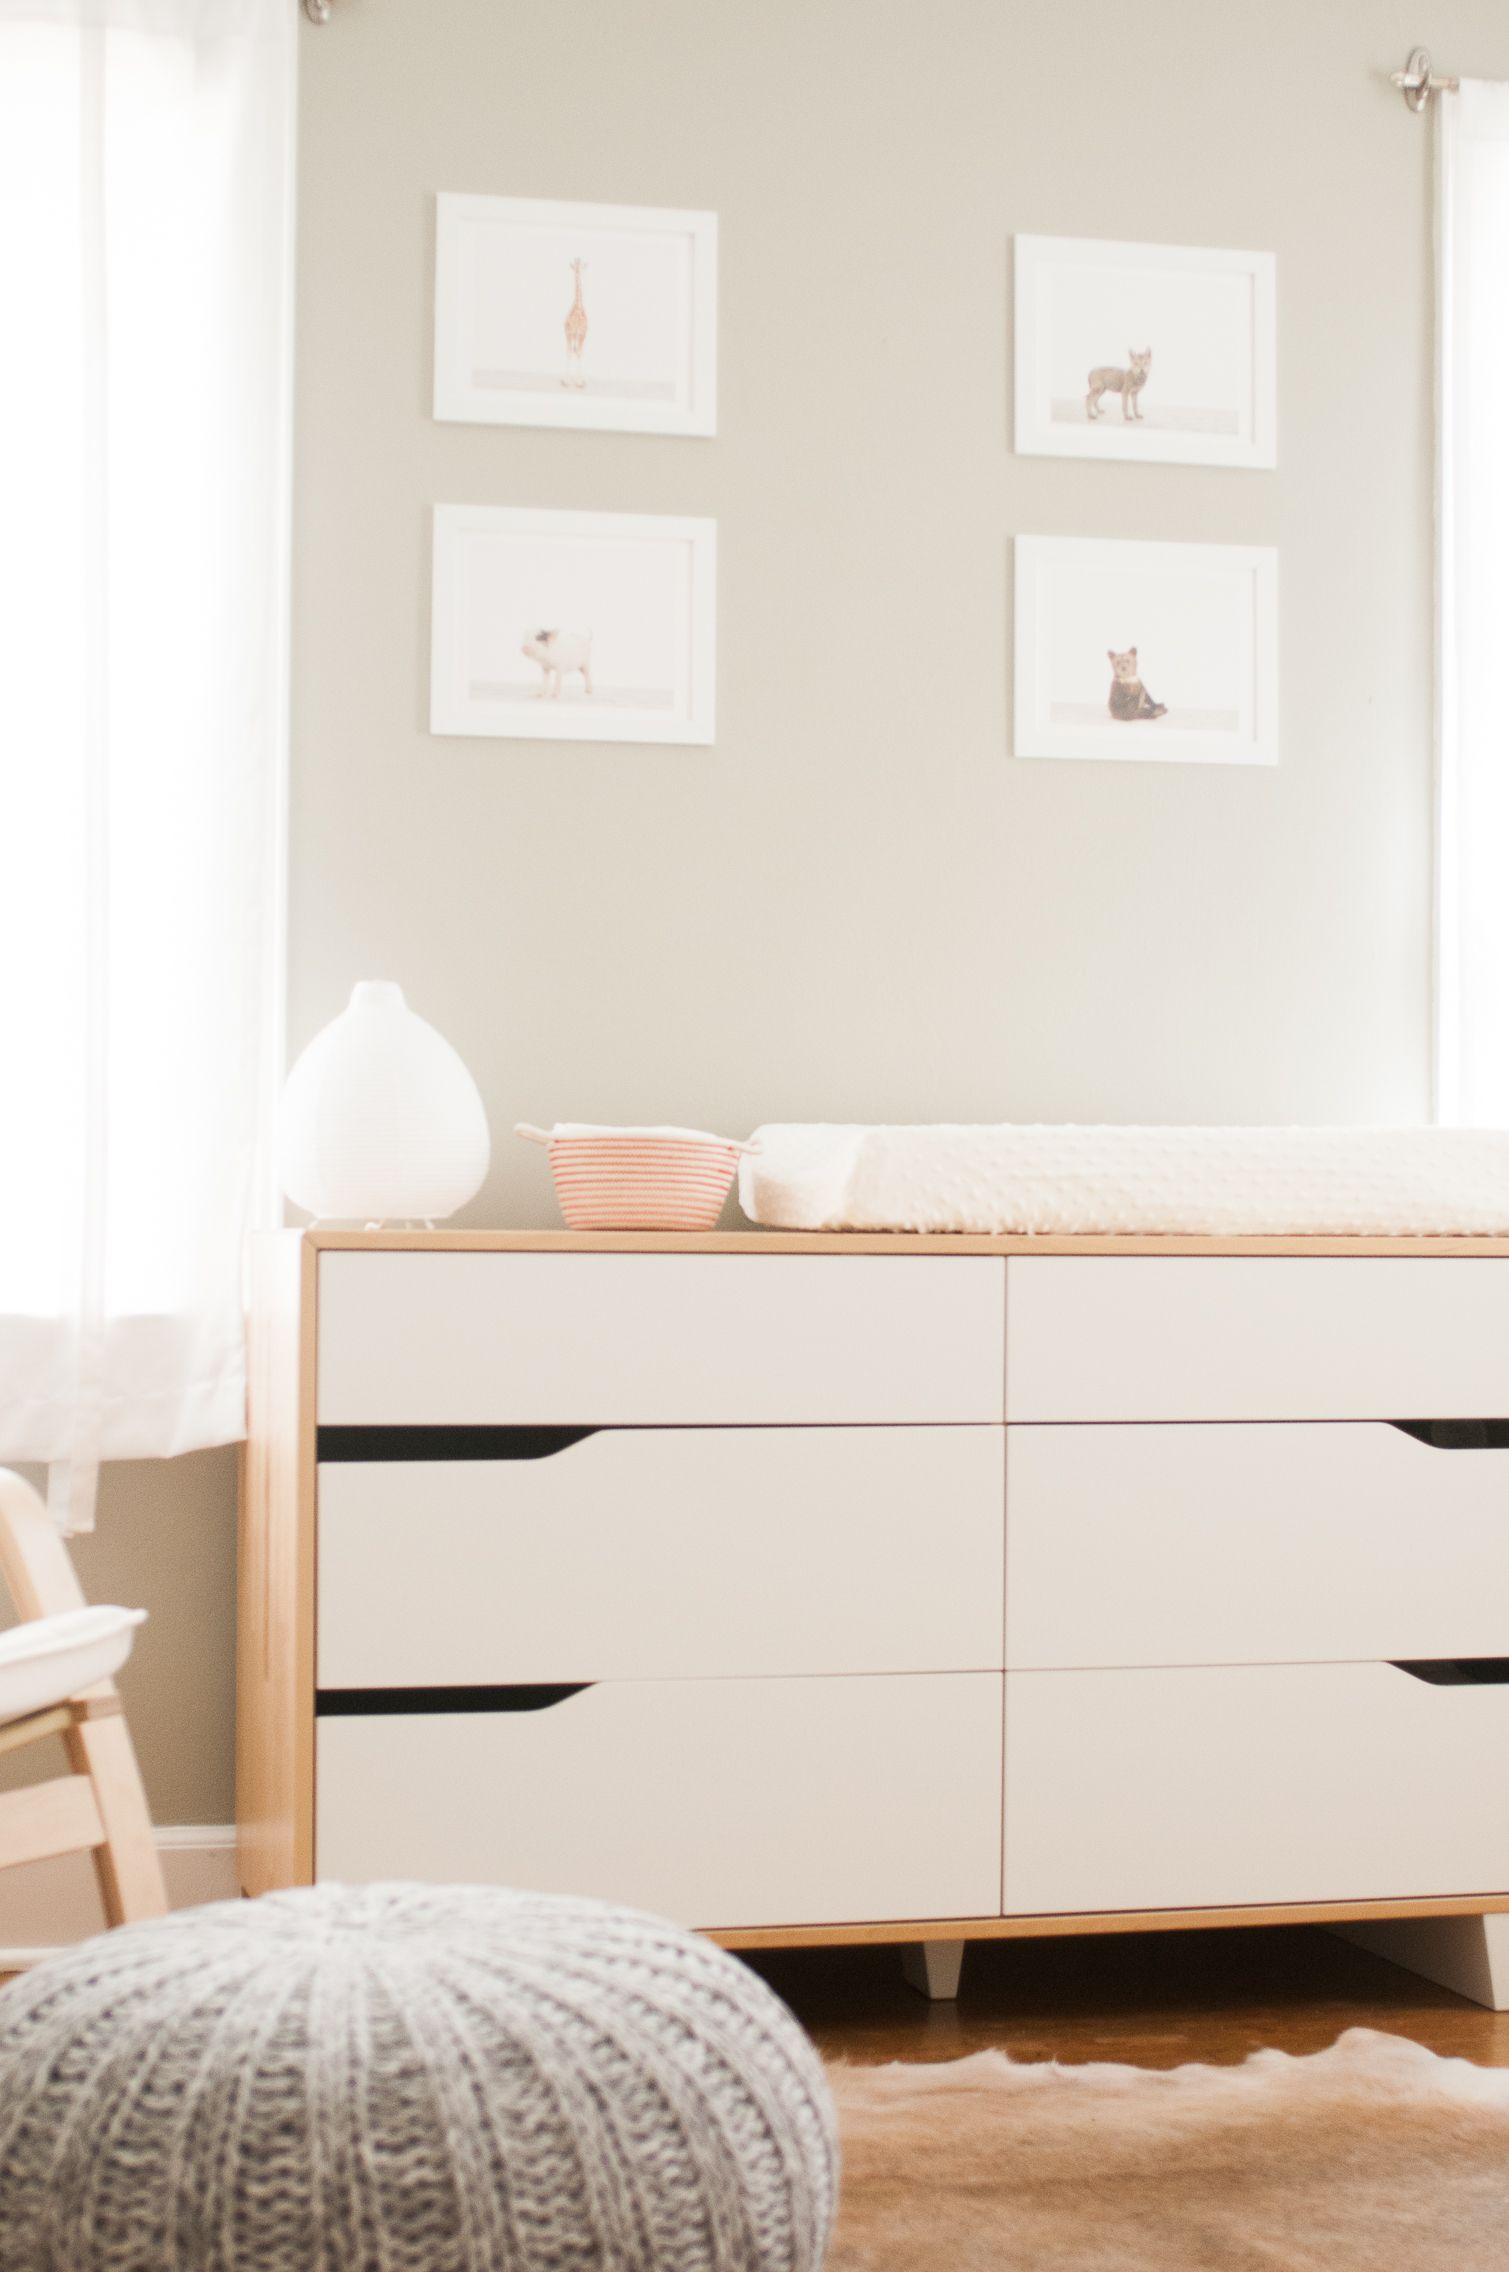 Leaning on this - white and wood - modern, clean and light lovin'  no dark bedroom